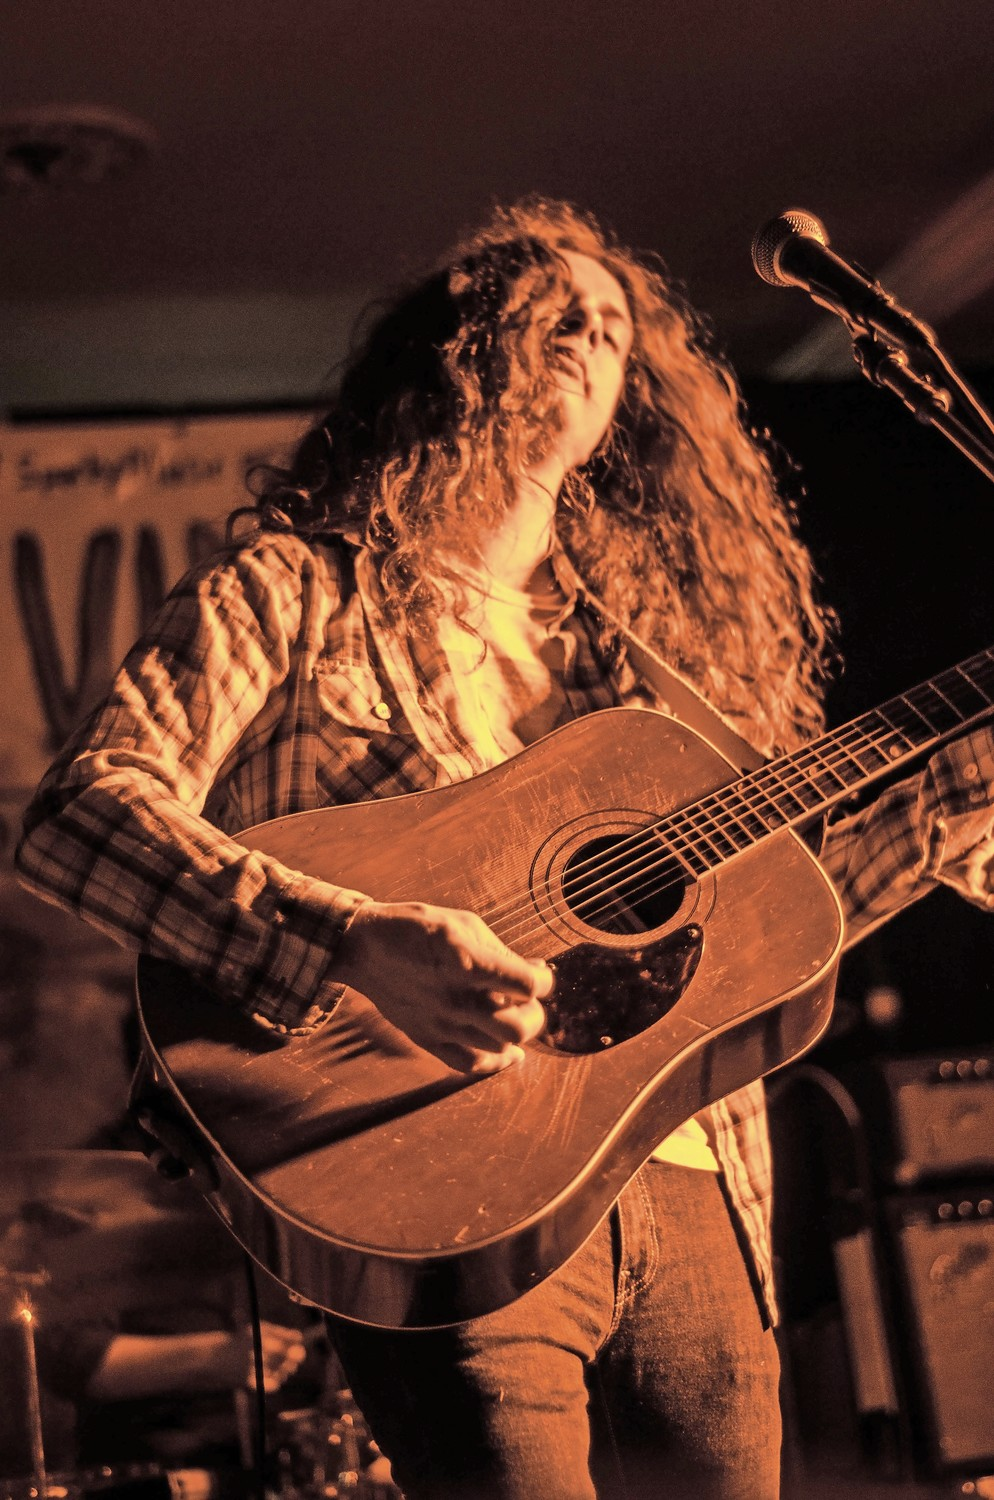 ndie rock singer, songwriter and multi-instrumentalist Kurt Vile headlined Shine A Light last year with his band, The Violators. Vile, the former lead guitarist of the acclaimed rock band The War on Drugs, is known for his solo work, and has released seven studio albums.